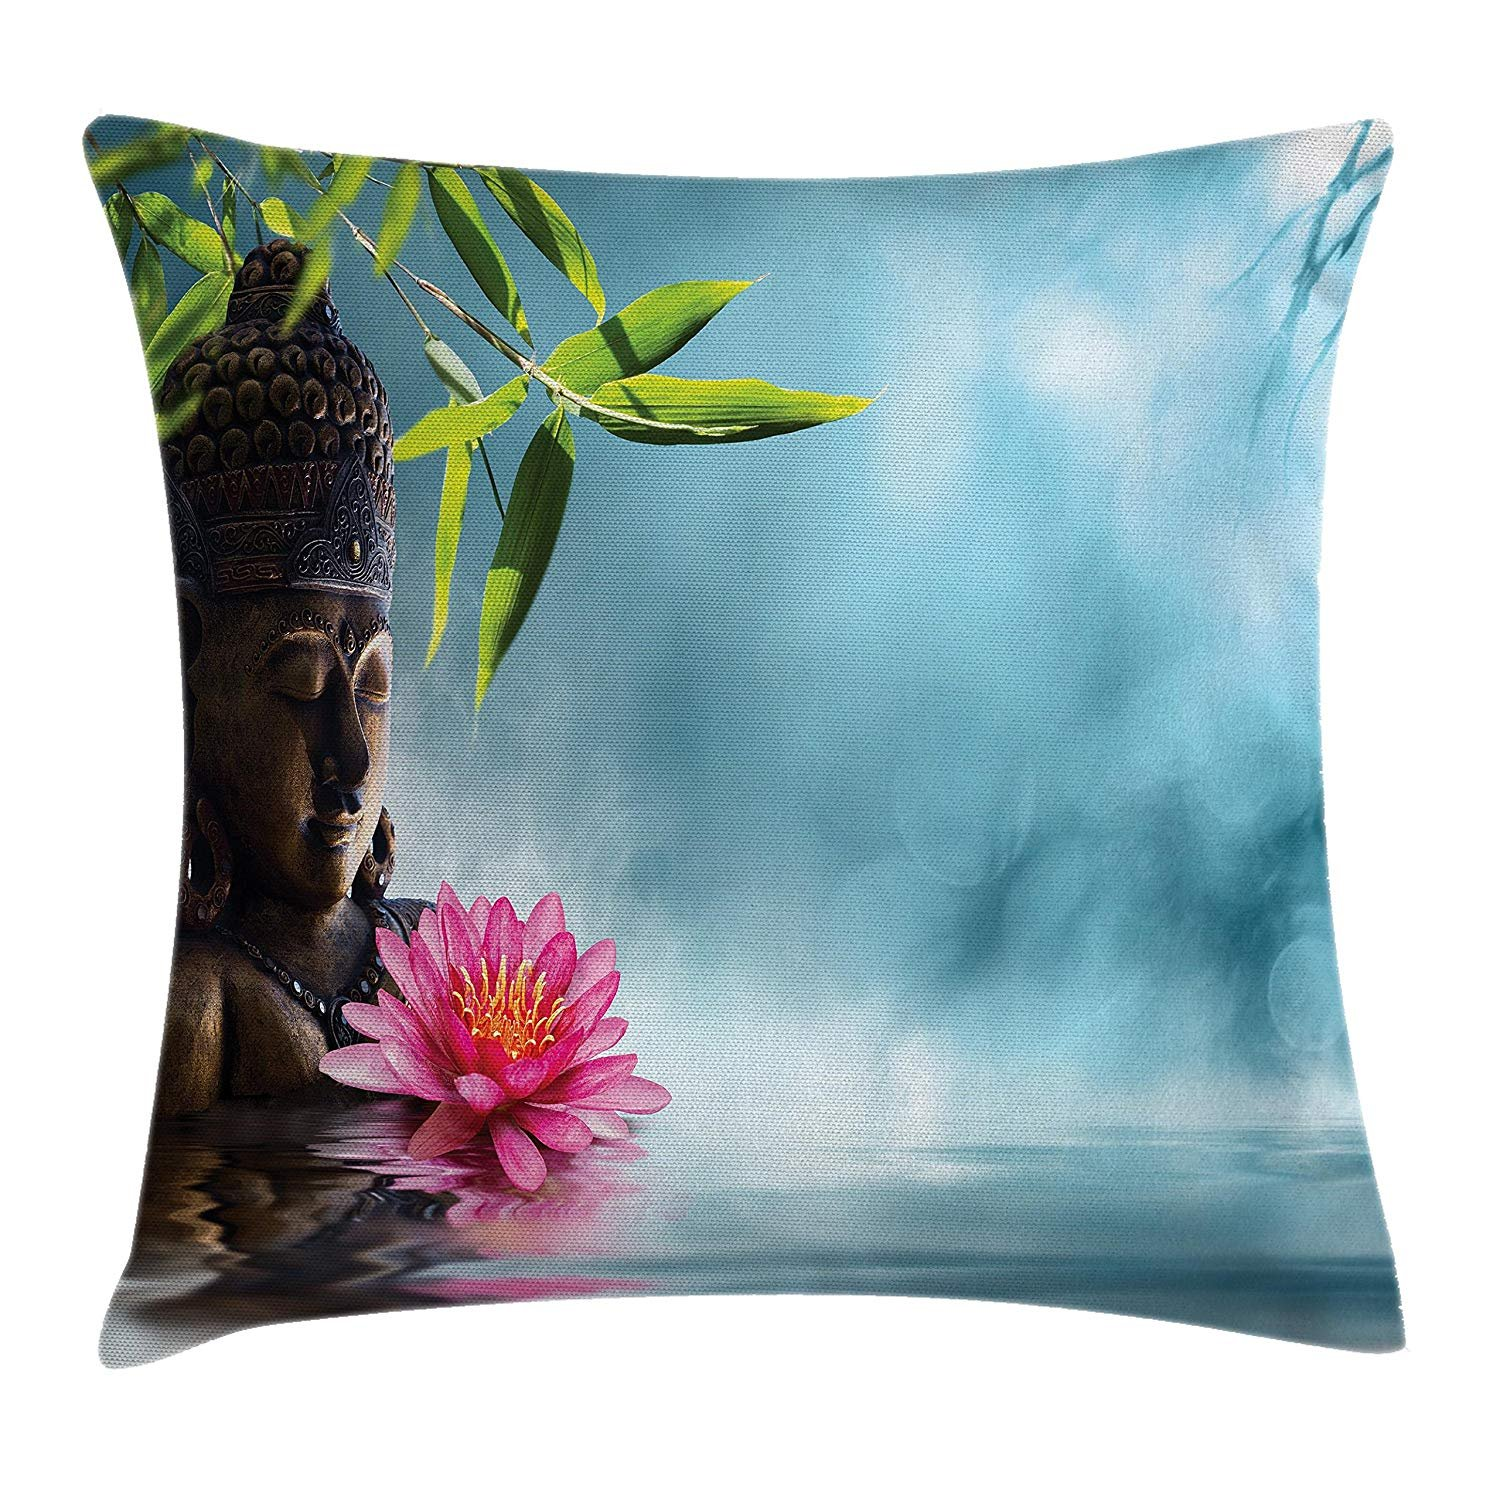 Zen Throw Pillow Cushion Cover, Zen Waterlillies Spa Theme Meditation Nature Feng Shui Natural Calm Water, Decorative Square Accent Pillow Case, 18 X 18 Inches, Light Blue Green Pink